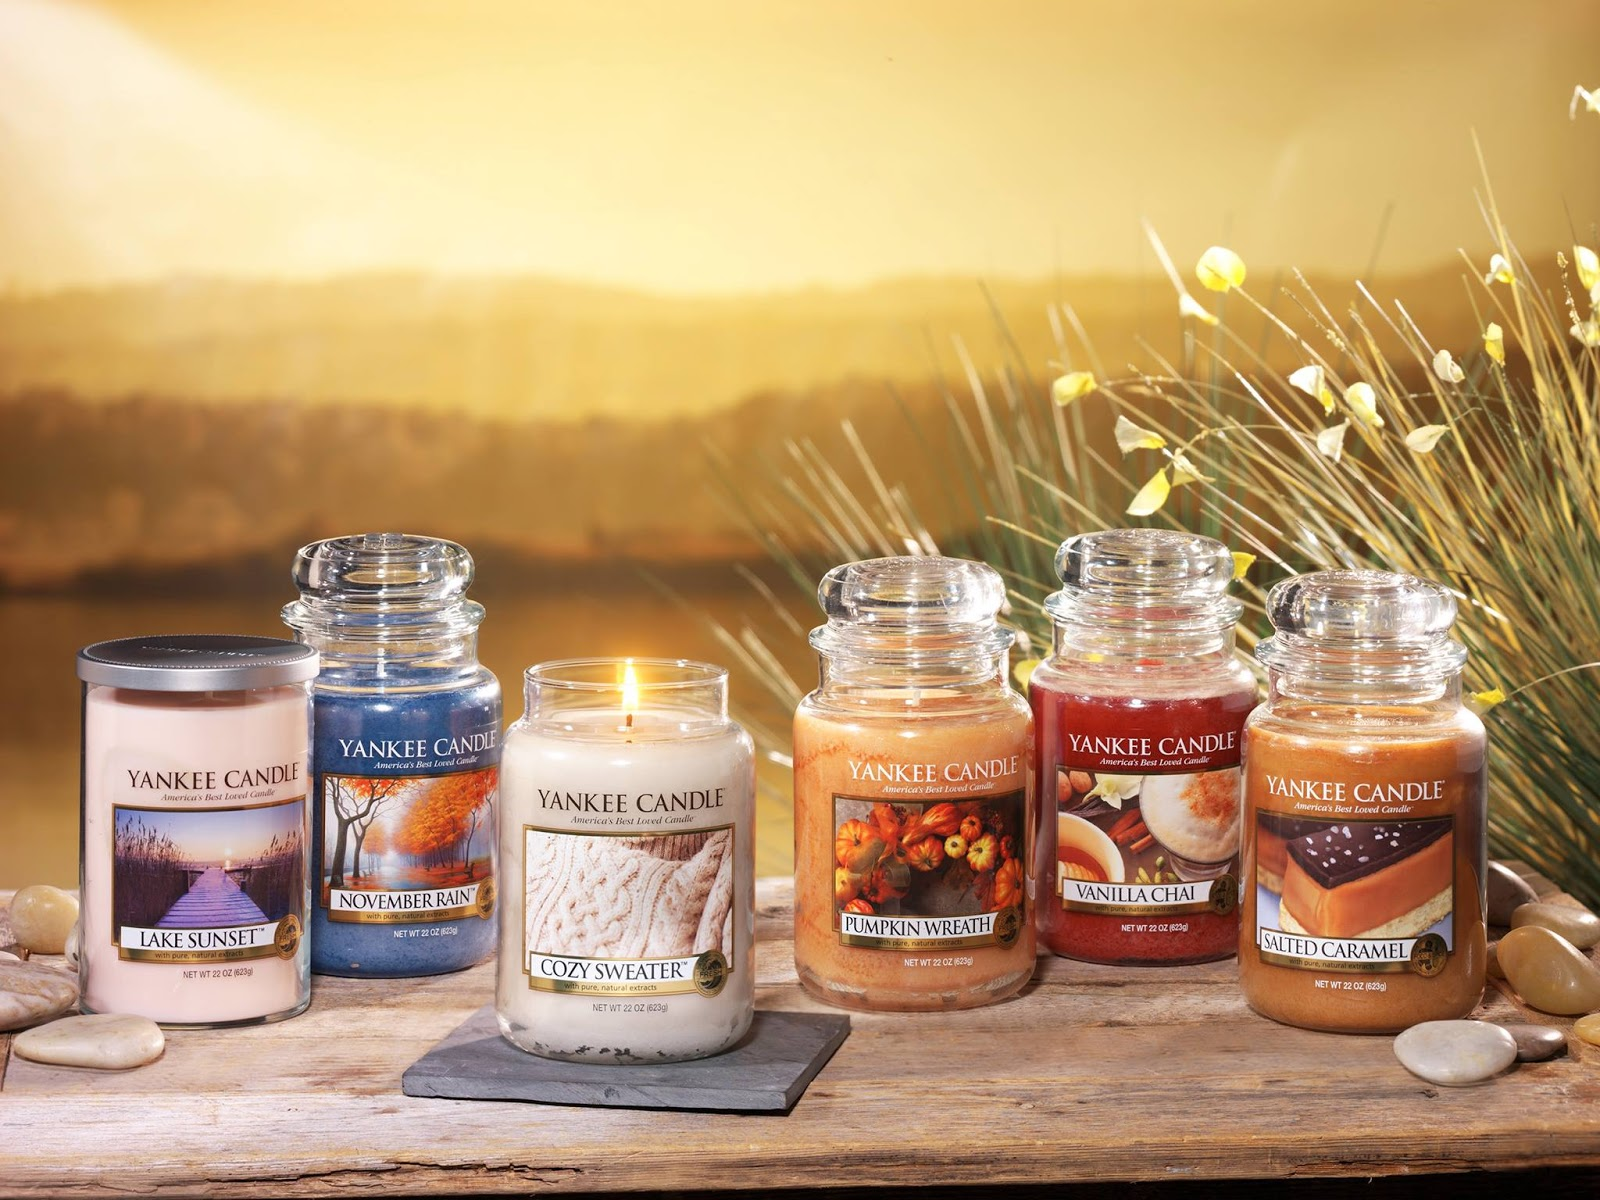 How to Use Yankee Candle Coupons: You can add the Promo Code right in your cart. Enter it in the Promo Code box and hit Apply to see it assigned to your order.